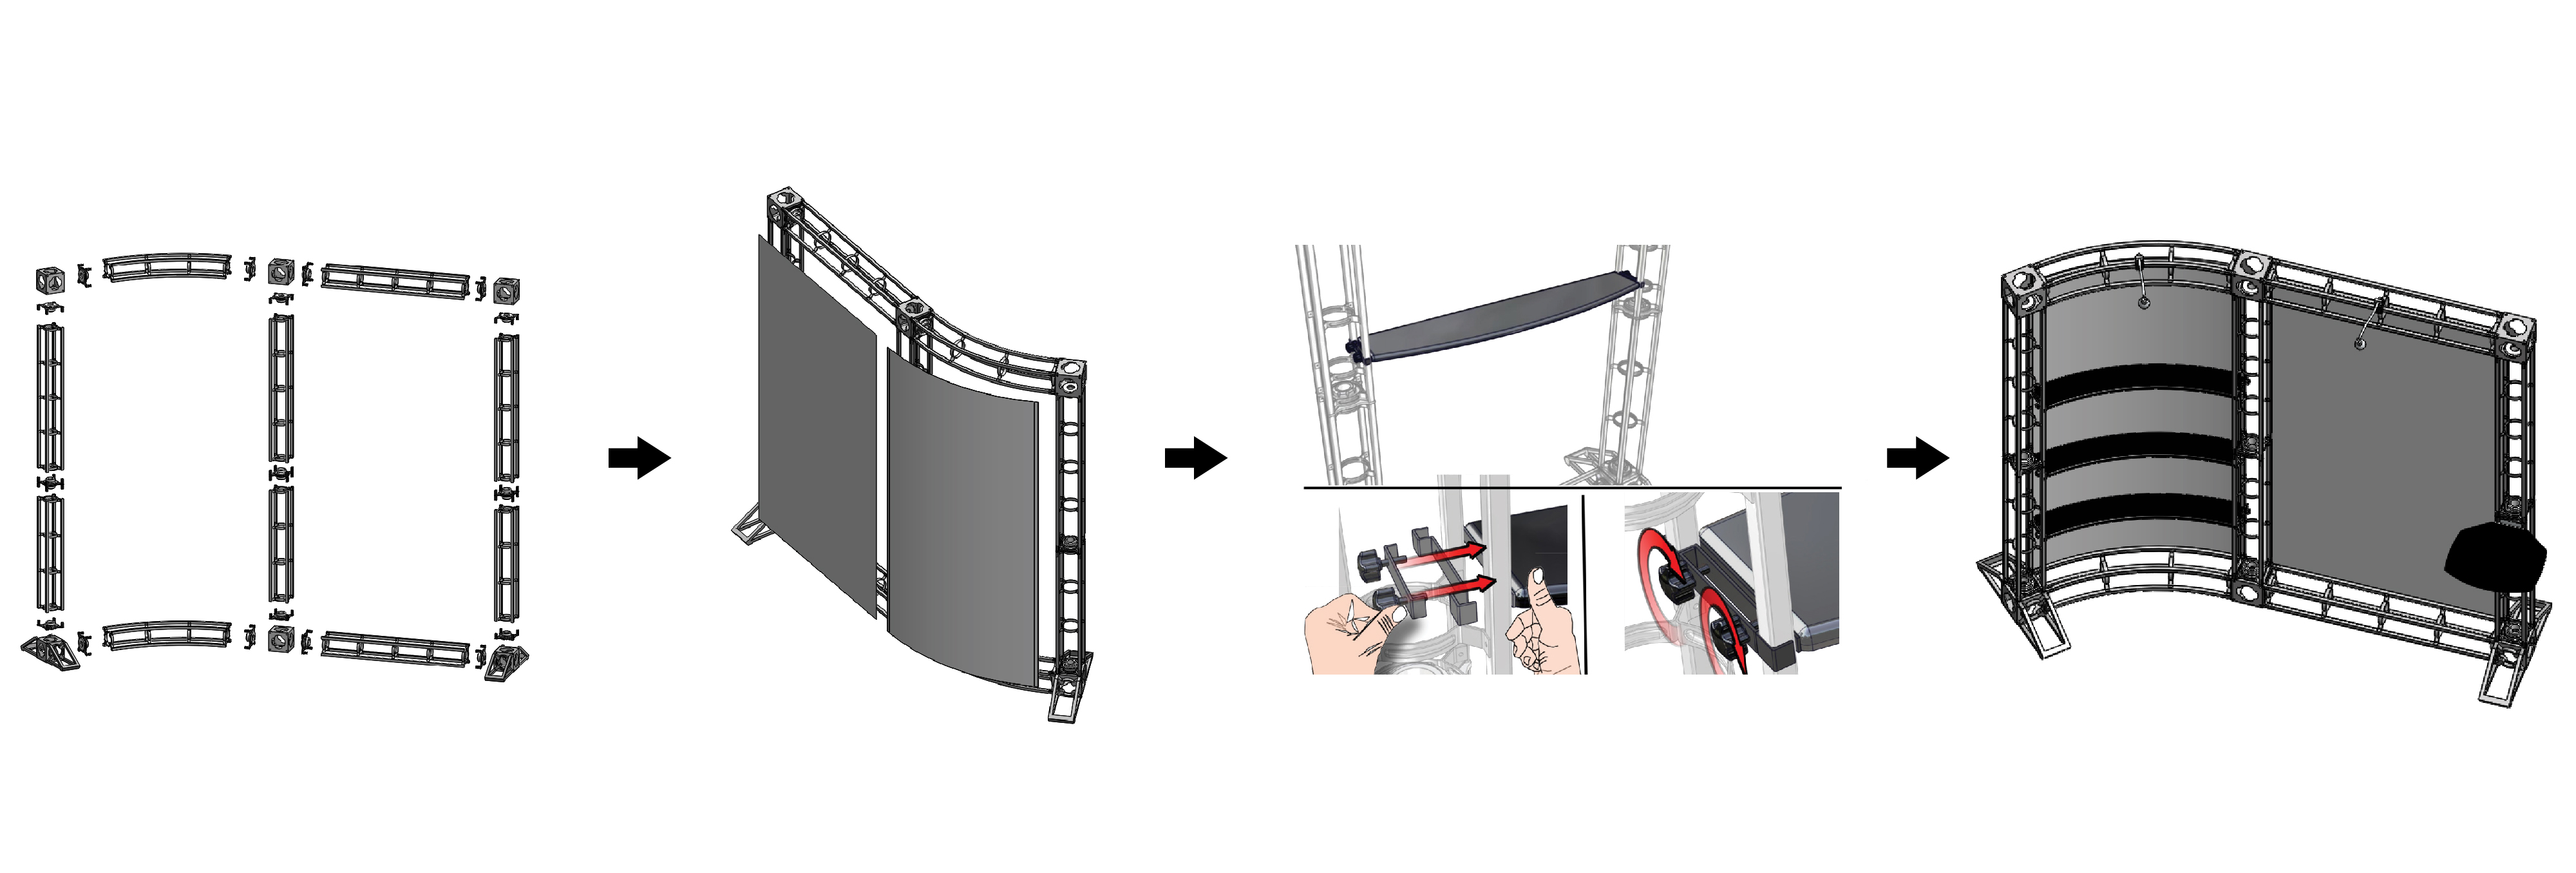 How to Assemble Truss Modular Pro Trade Show Booths